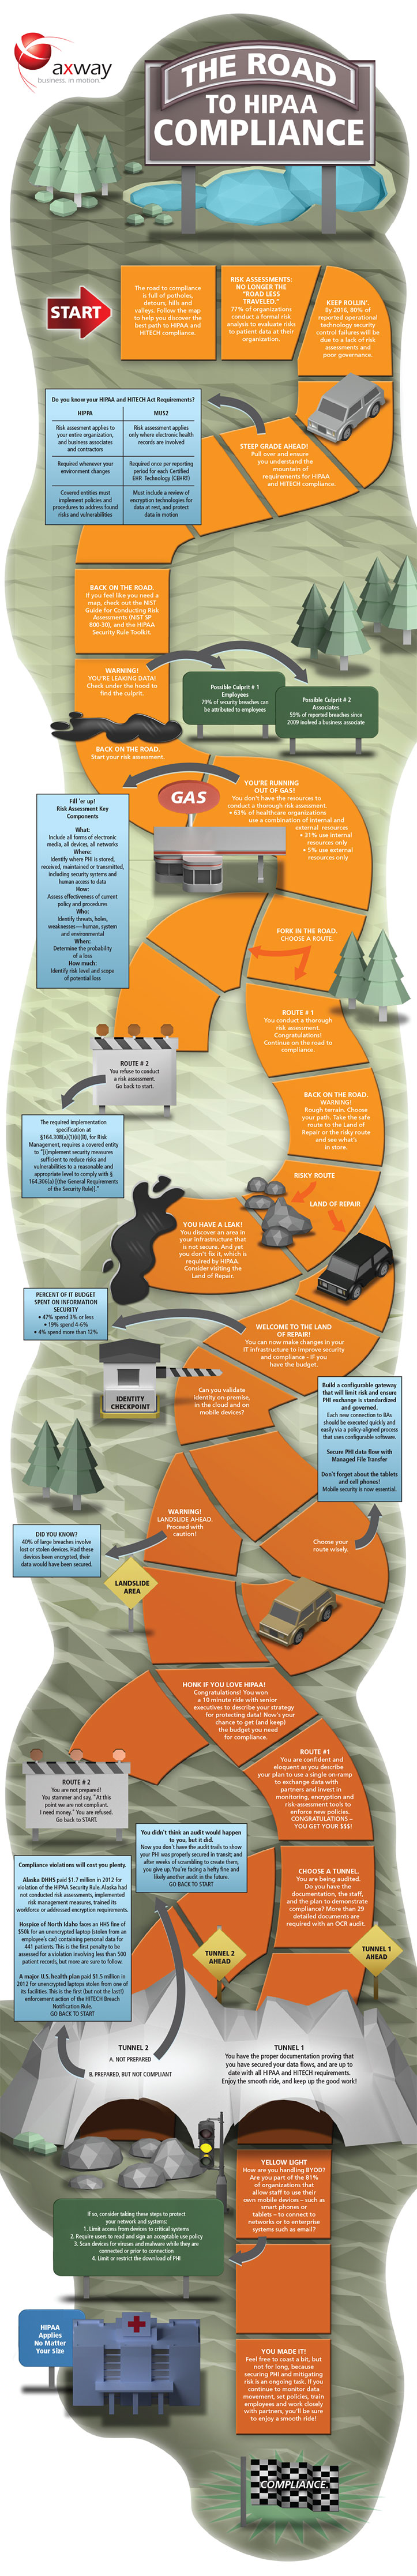 Axway Infographic - The Road to HIPAA Compliance